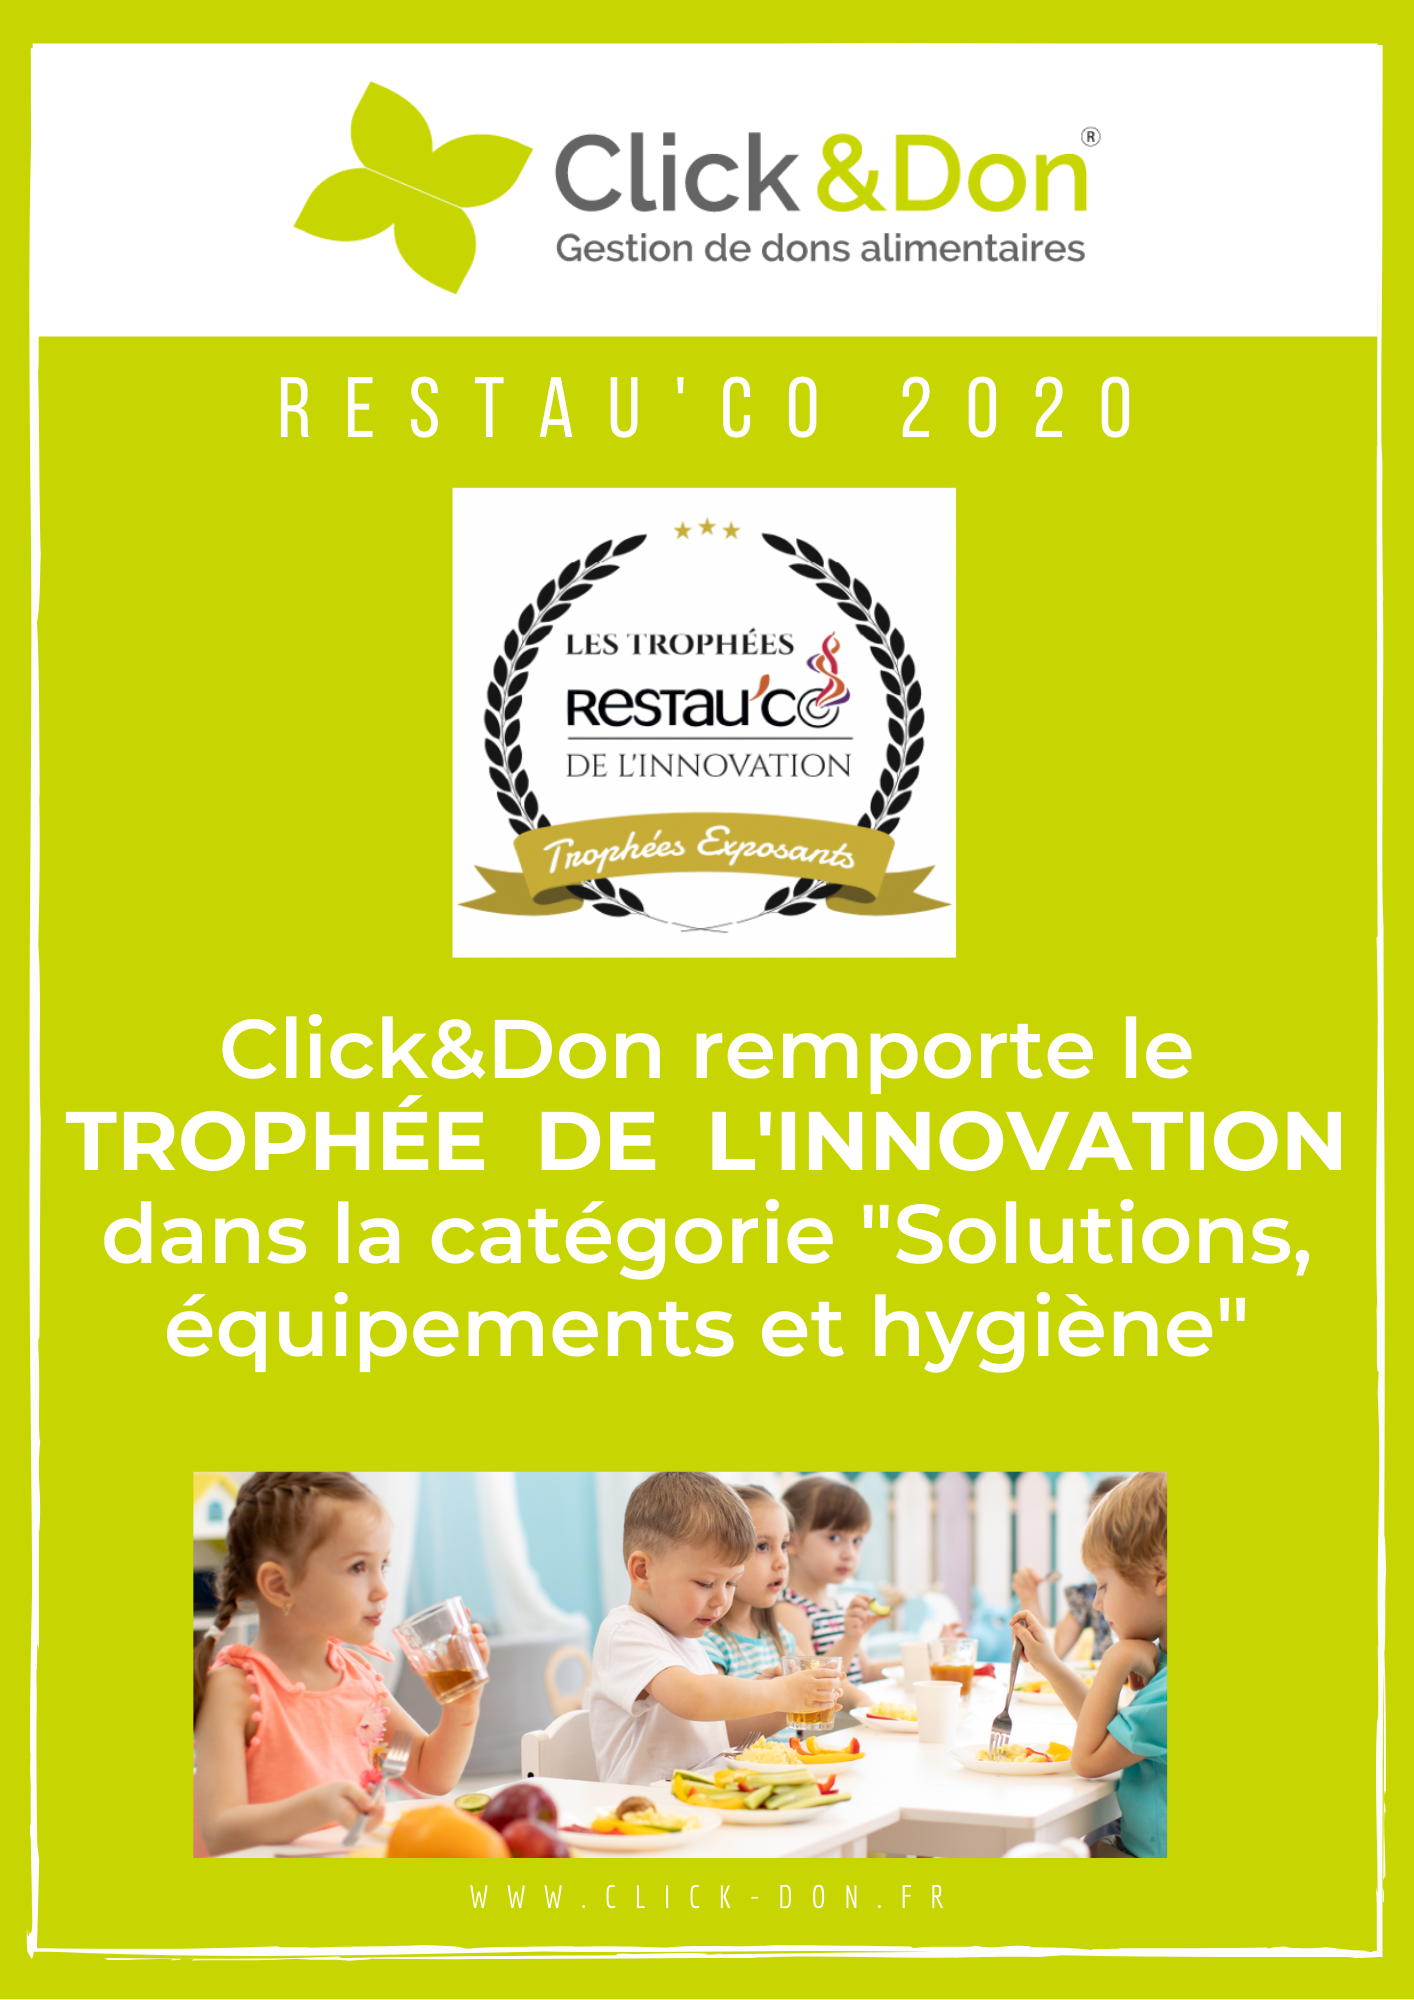 Click&Don remporte le Trophée de l'innovation Restau'co 2020 !